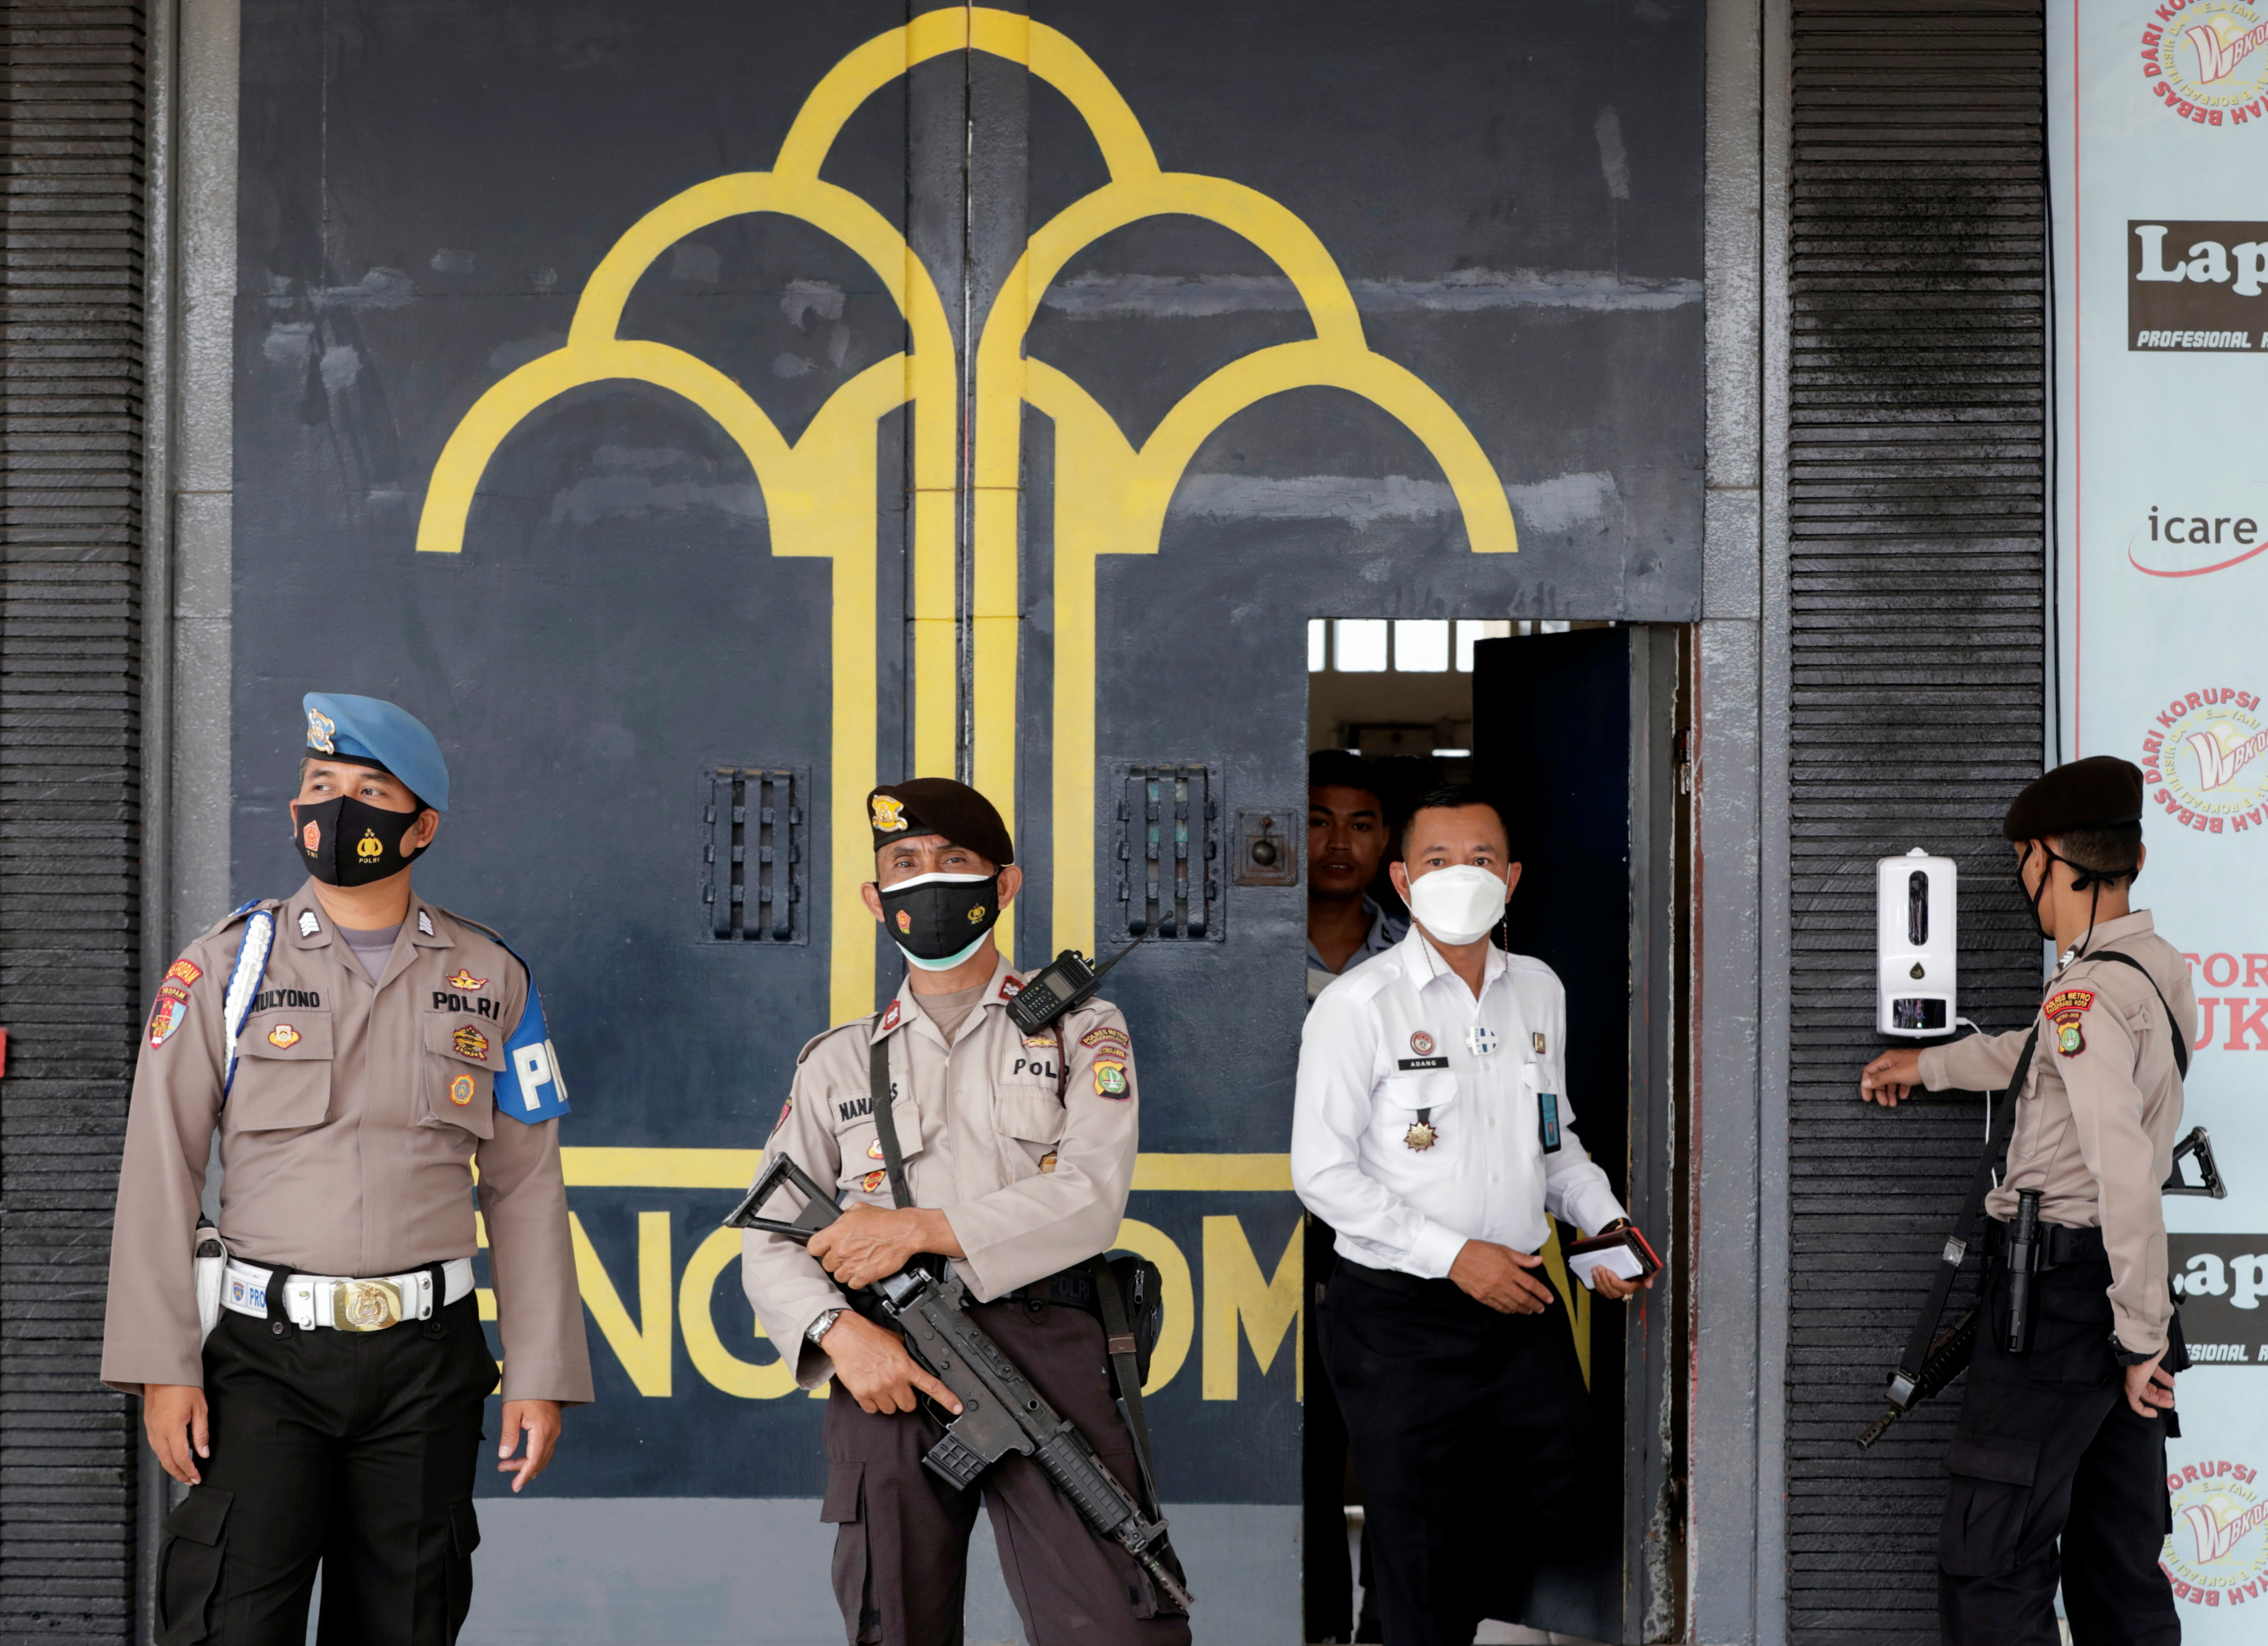 Police officer guards at the main entrance gate of Tangerang prison following a fire overnight at an overcrowded jail in Tangerang on the outskirts of Jakarta, Indonesia, September 8, 2021. REUTERS/Ajeng Dinar Ulfiana